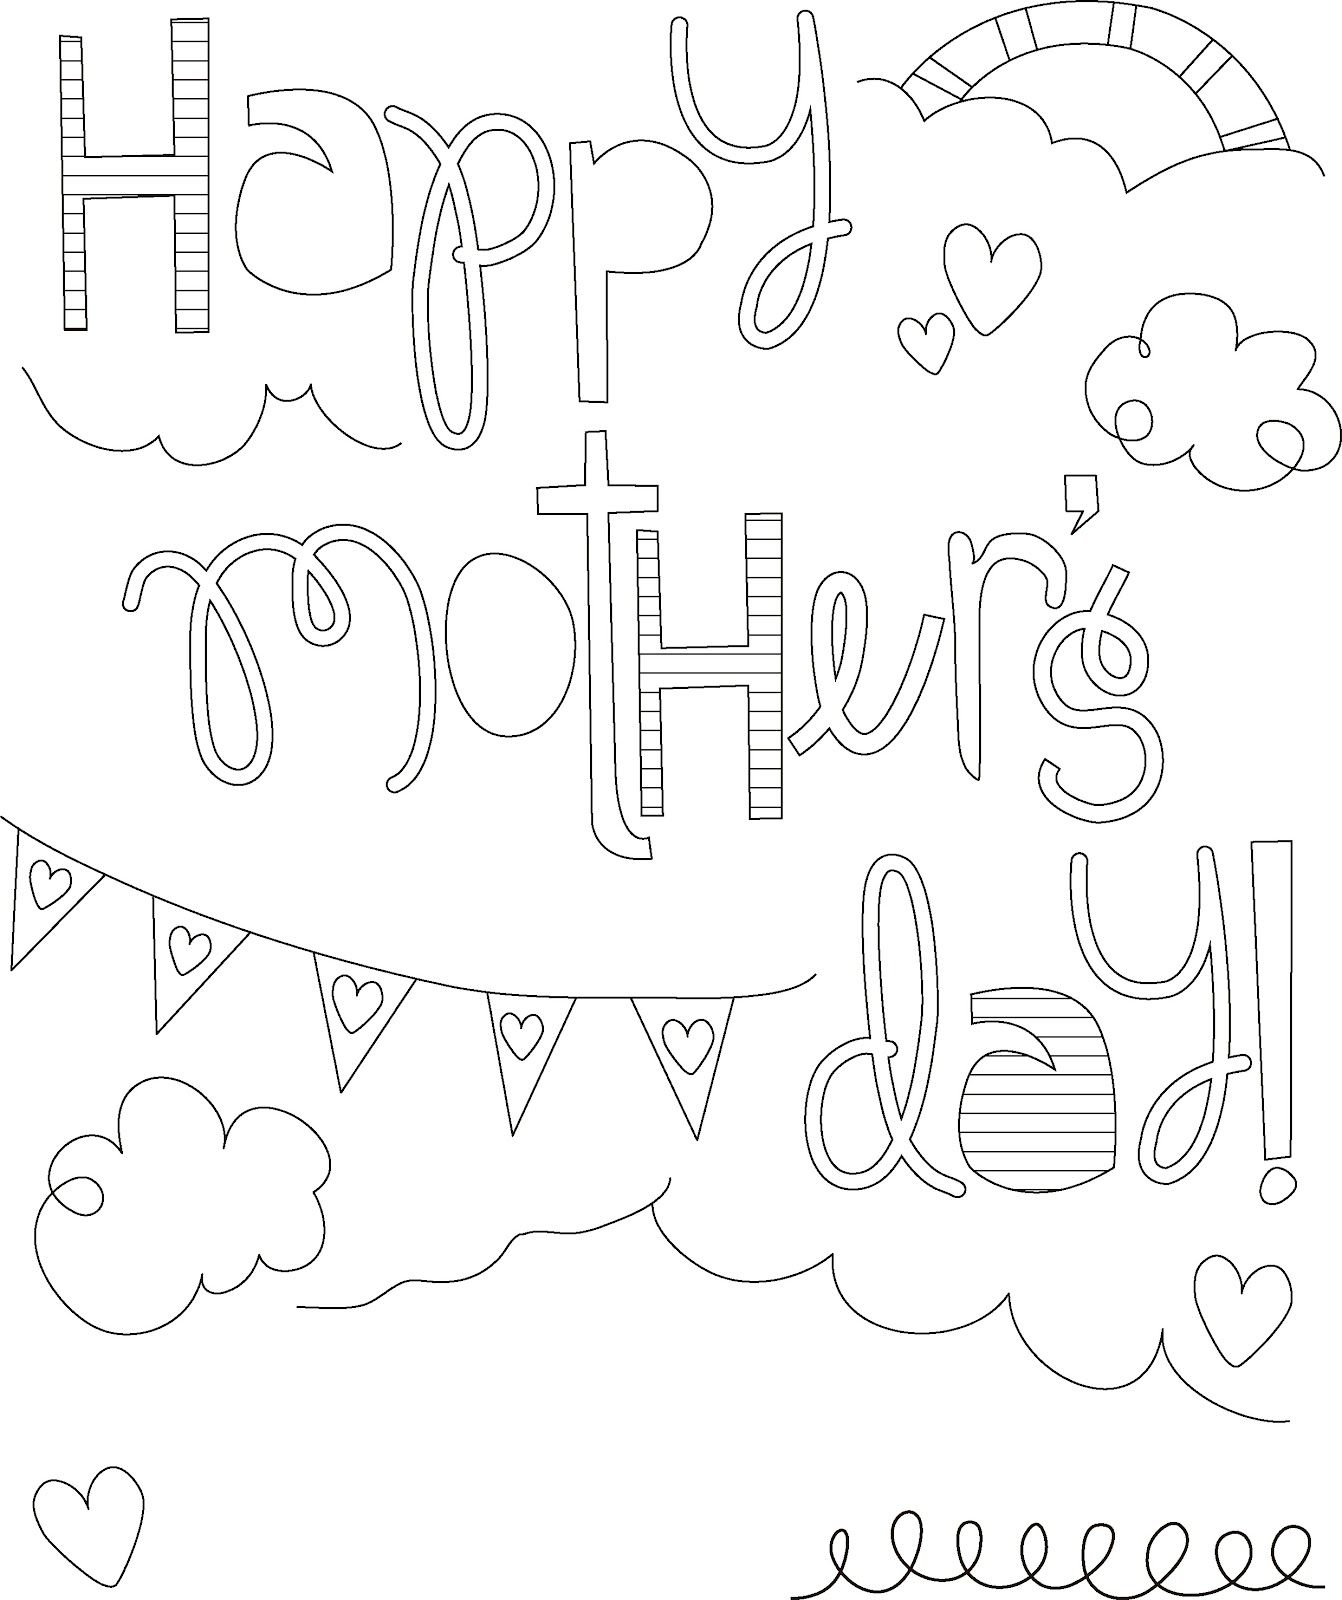 Mothers day coloring sheets for sunday school - Here Is A Collection Of Some Mother S Day Coloring Pages Which Kids May Easily Print